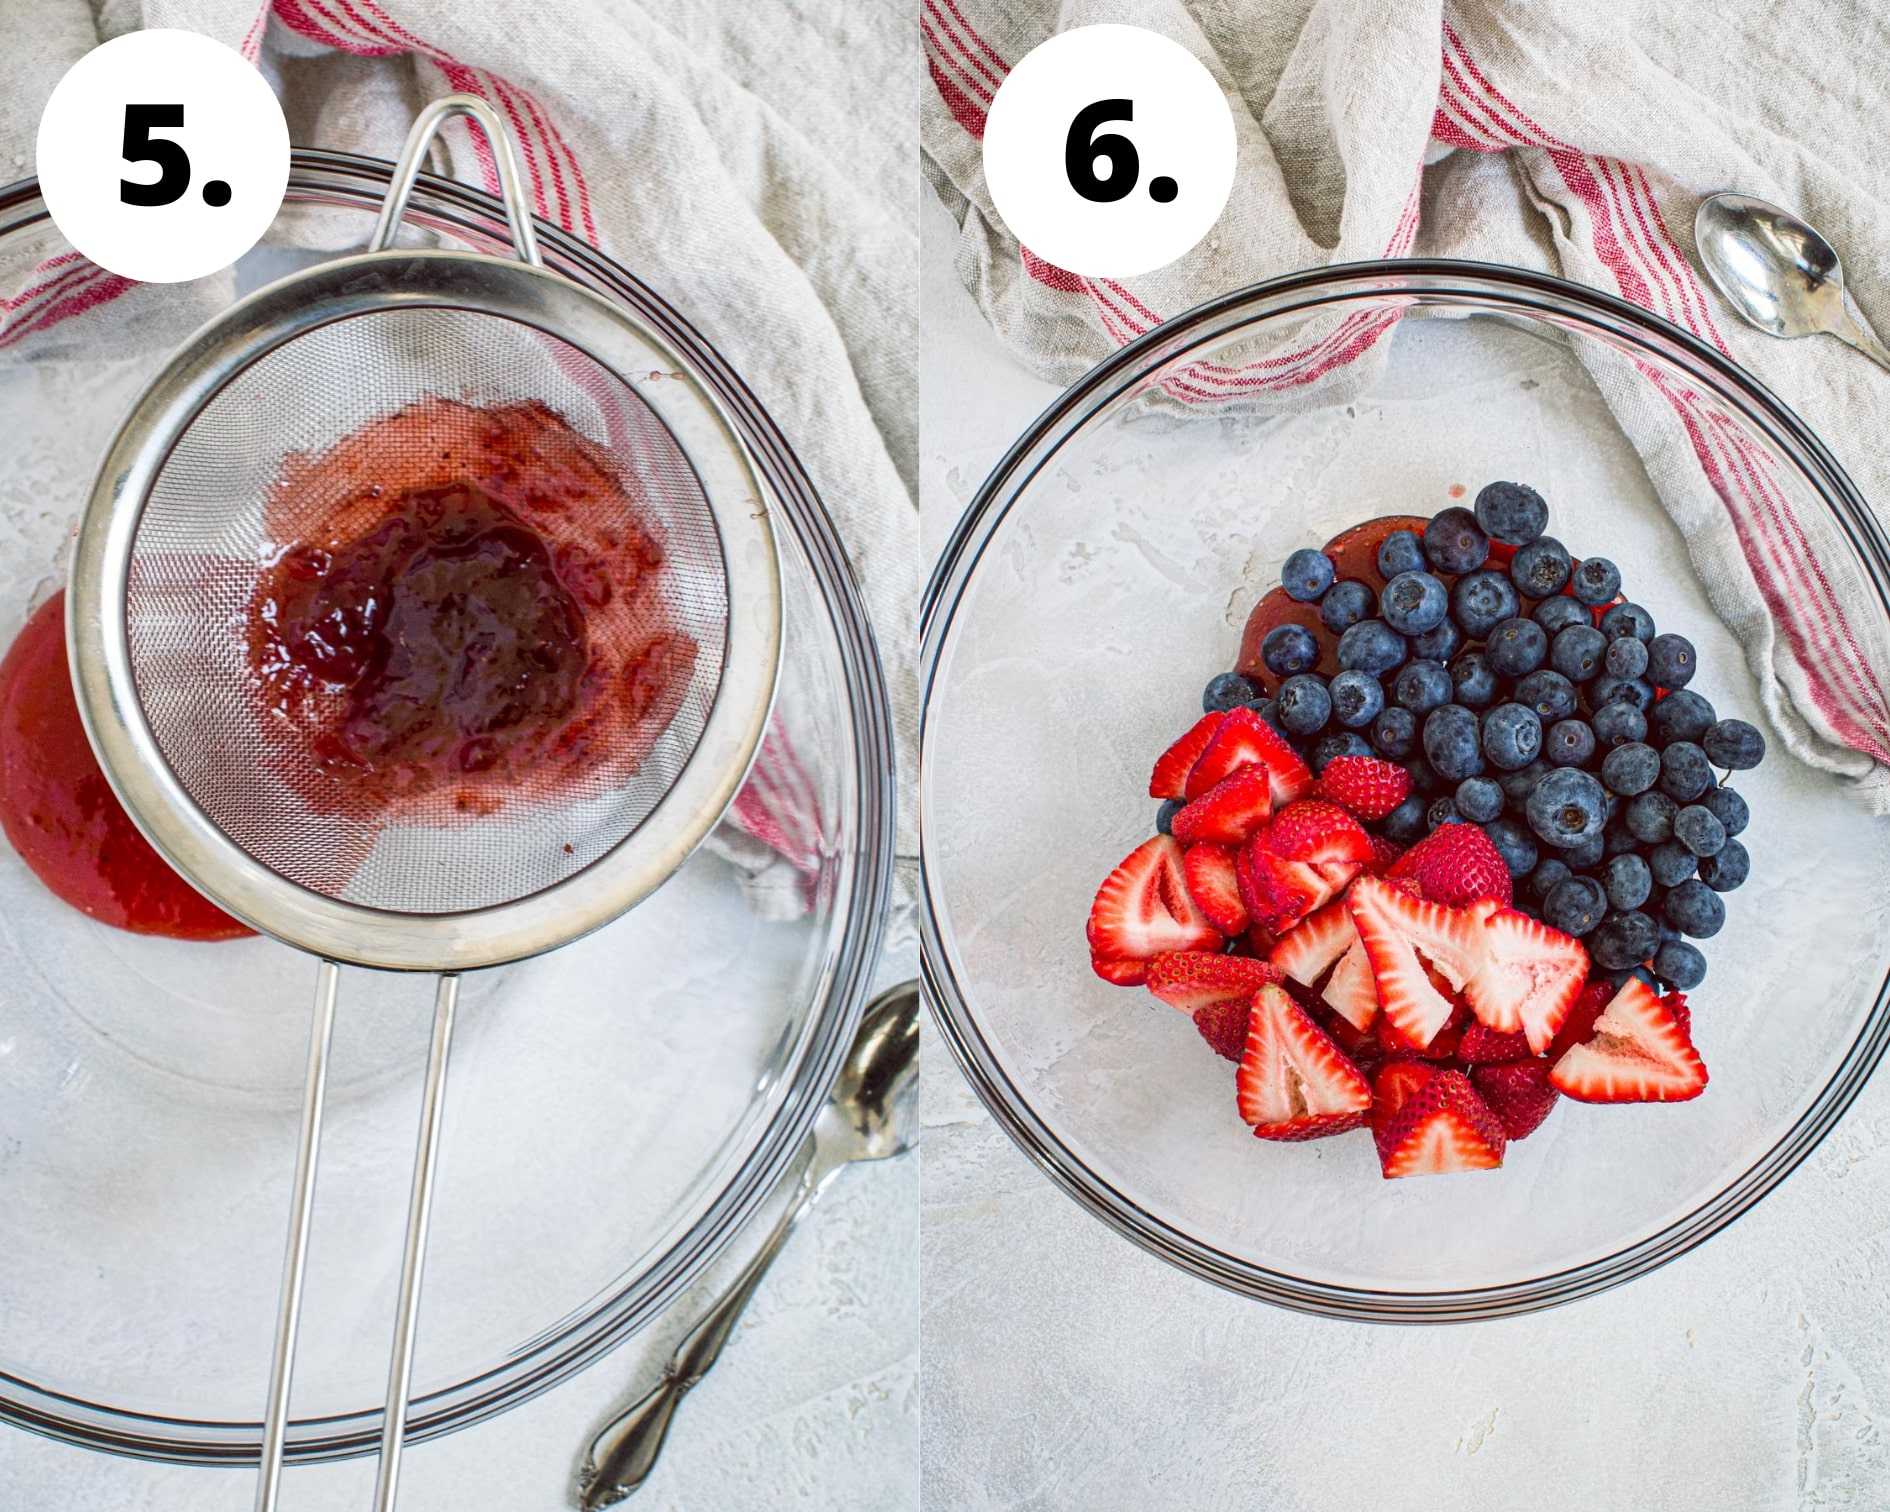 Mixed berry fruit pizza process steps 5 and 6.